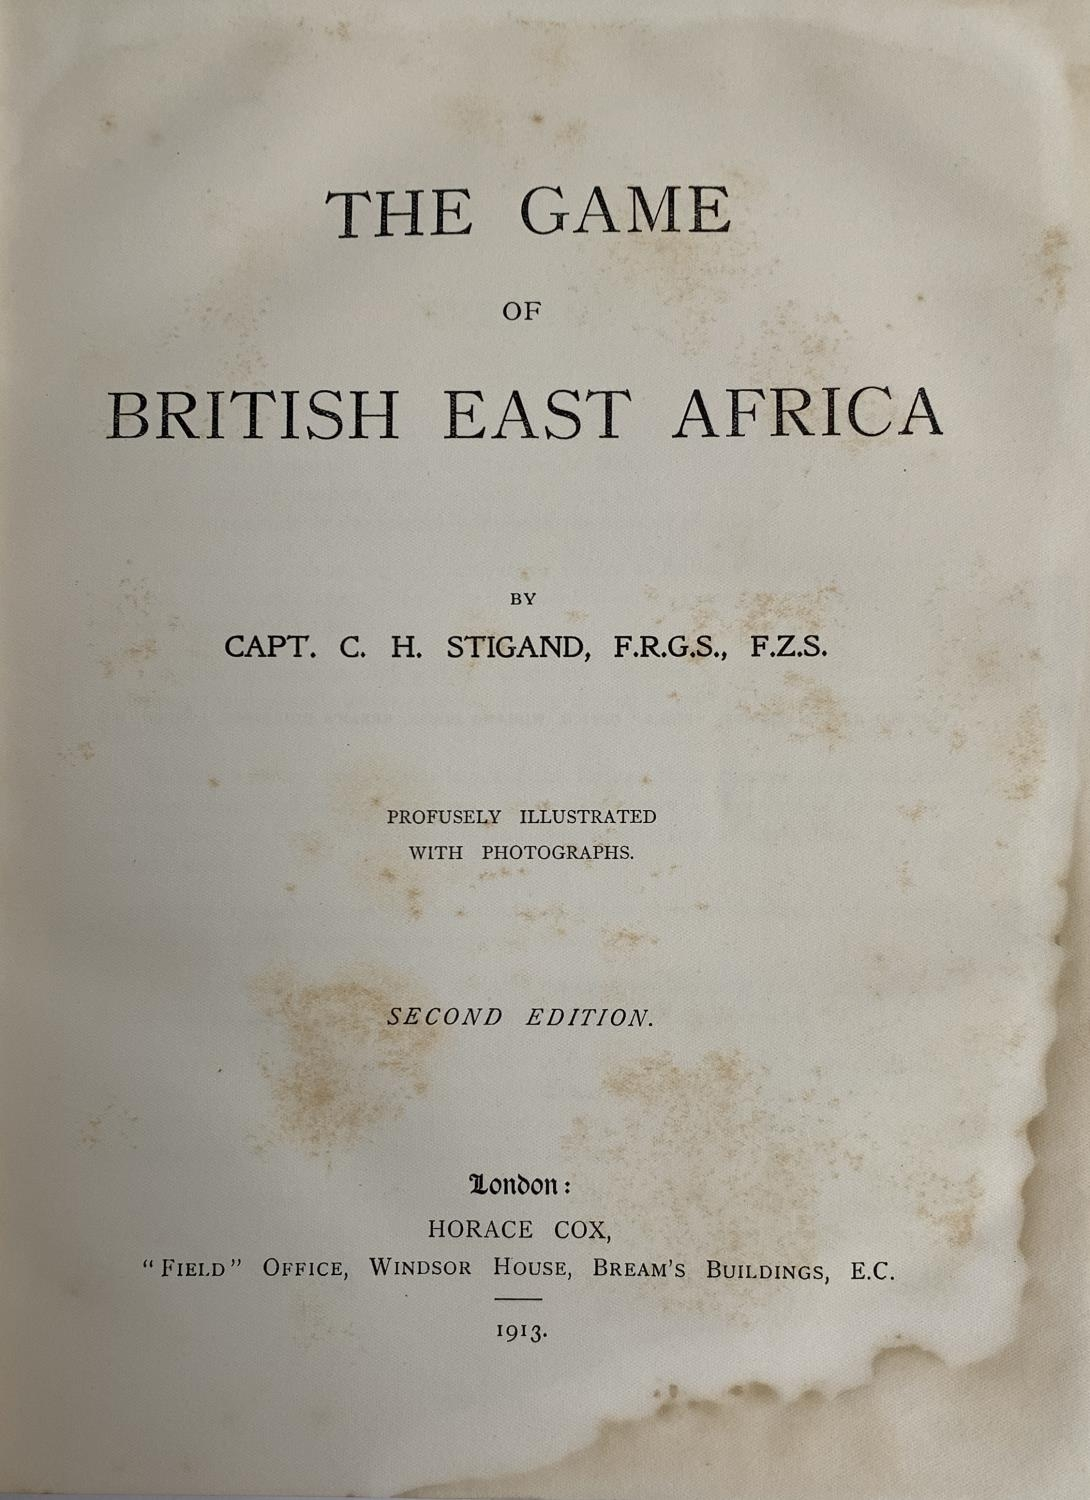 Captain C.H. Stigand, 'The Game of British East Africa', second edition, London: Horace Cox, 1913 - Image 2 of 2